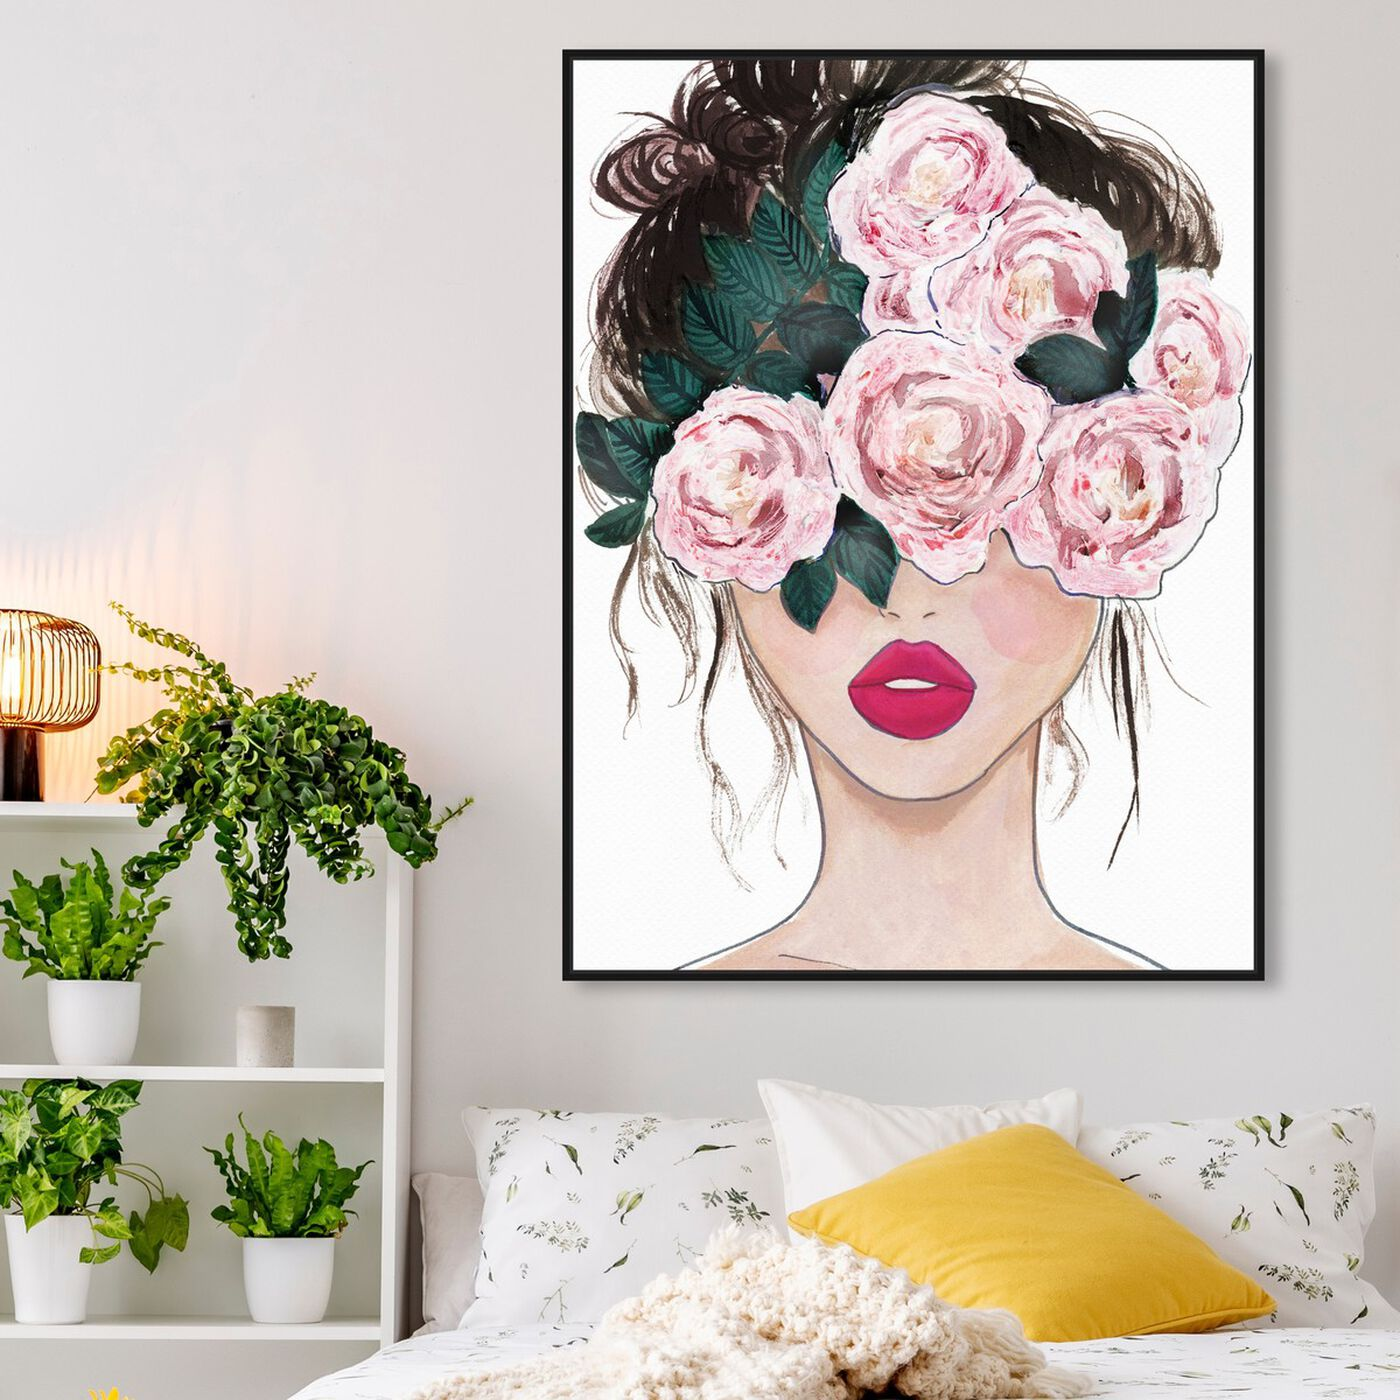 Hanging view of Flower Blind featuring floral and botanical and florals art.